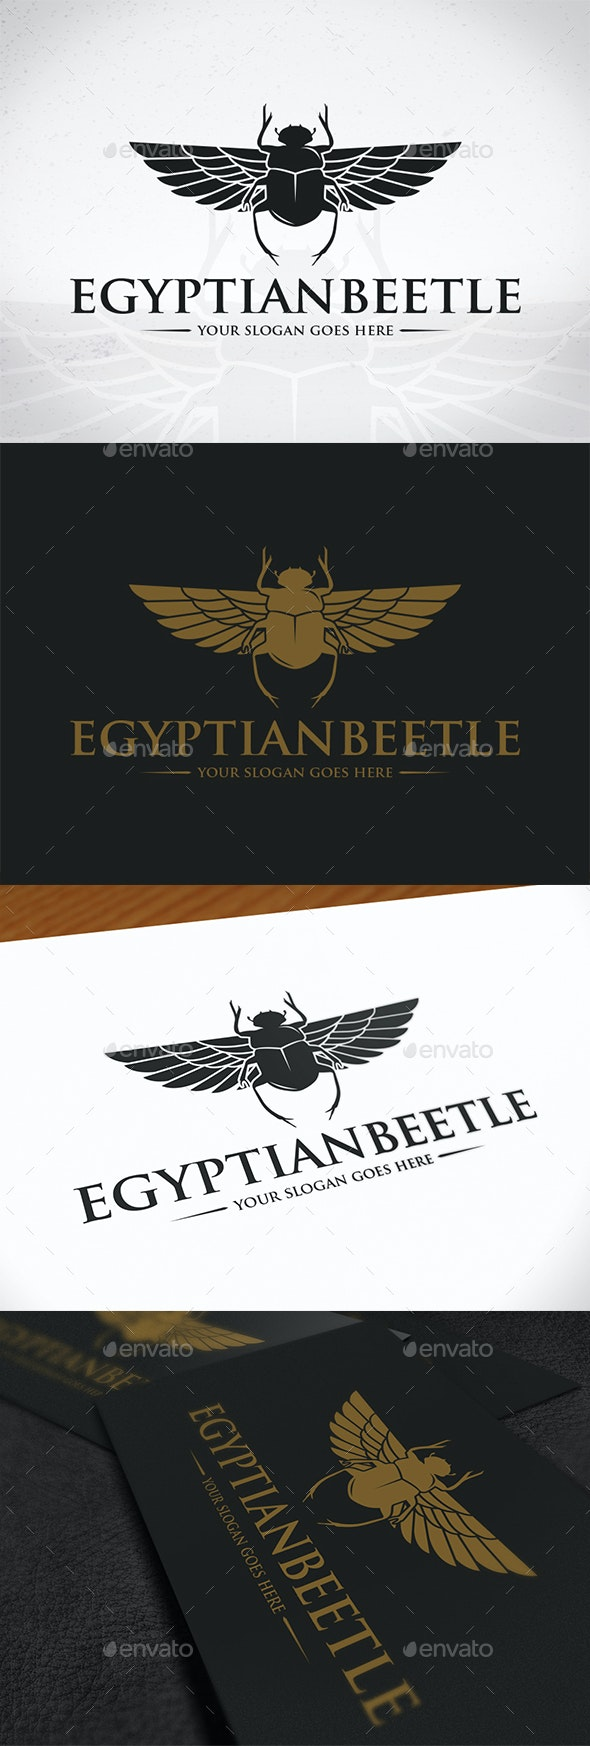 Egyptian Beetle Logo Template